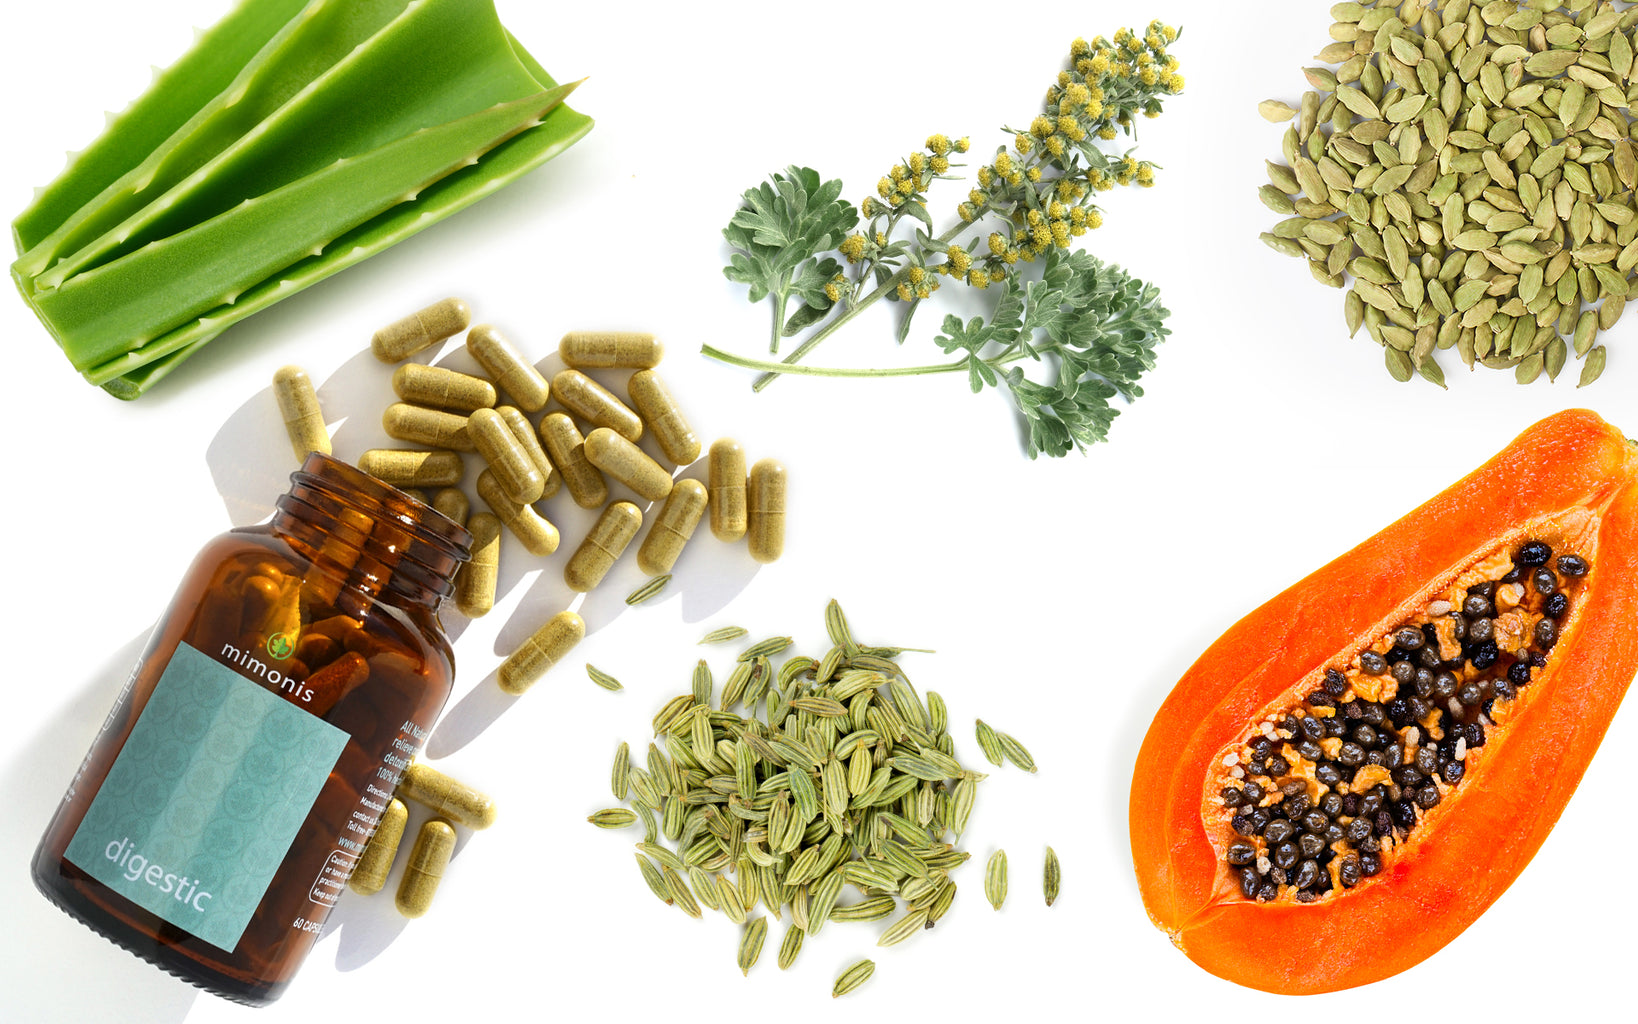 Papaya, Aloe, Fennel, Cardamom, ingredients of the digestive supplement and constipation relief Digestic